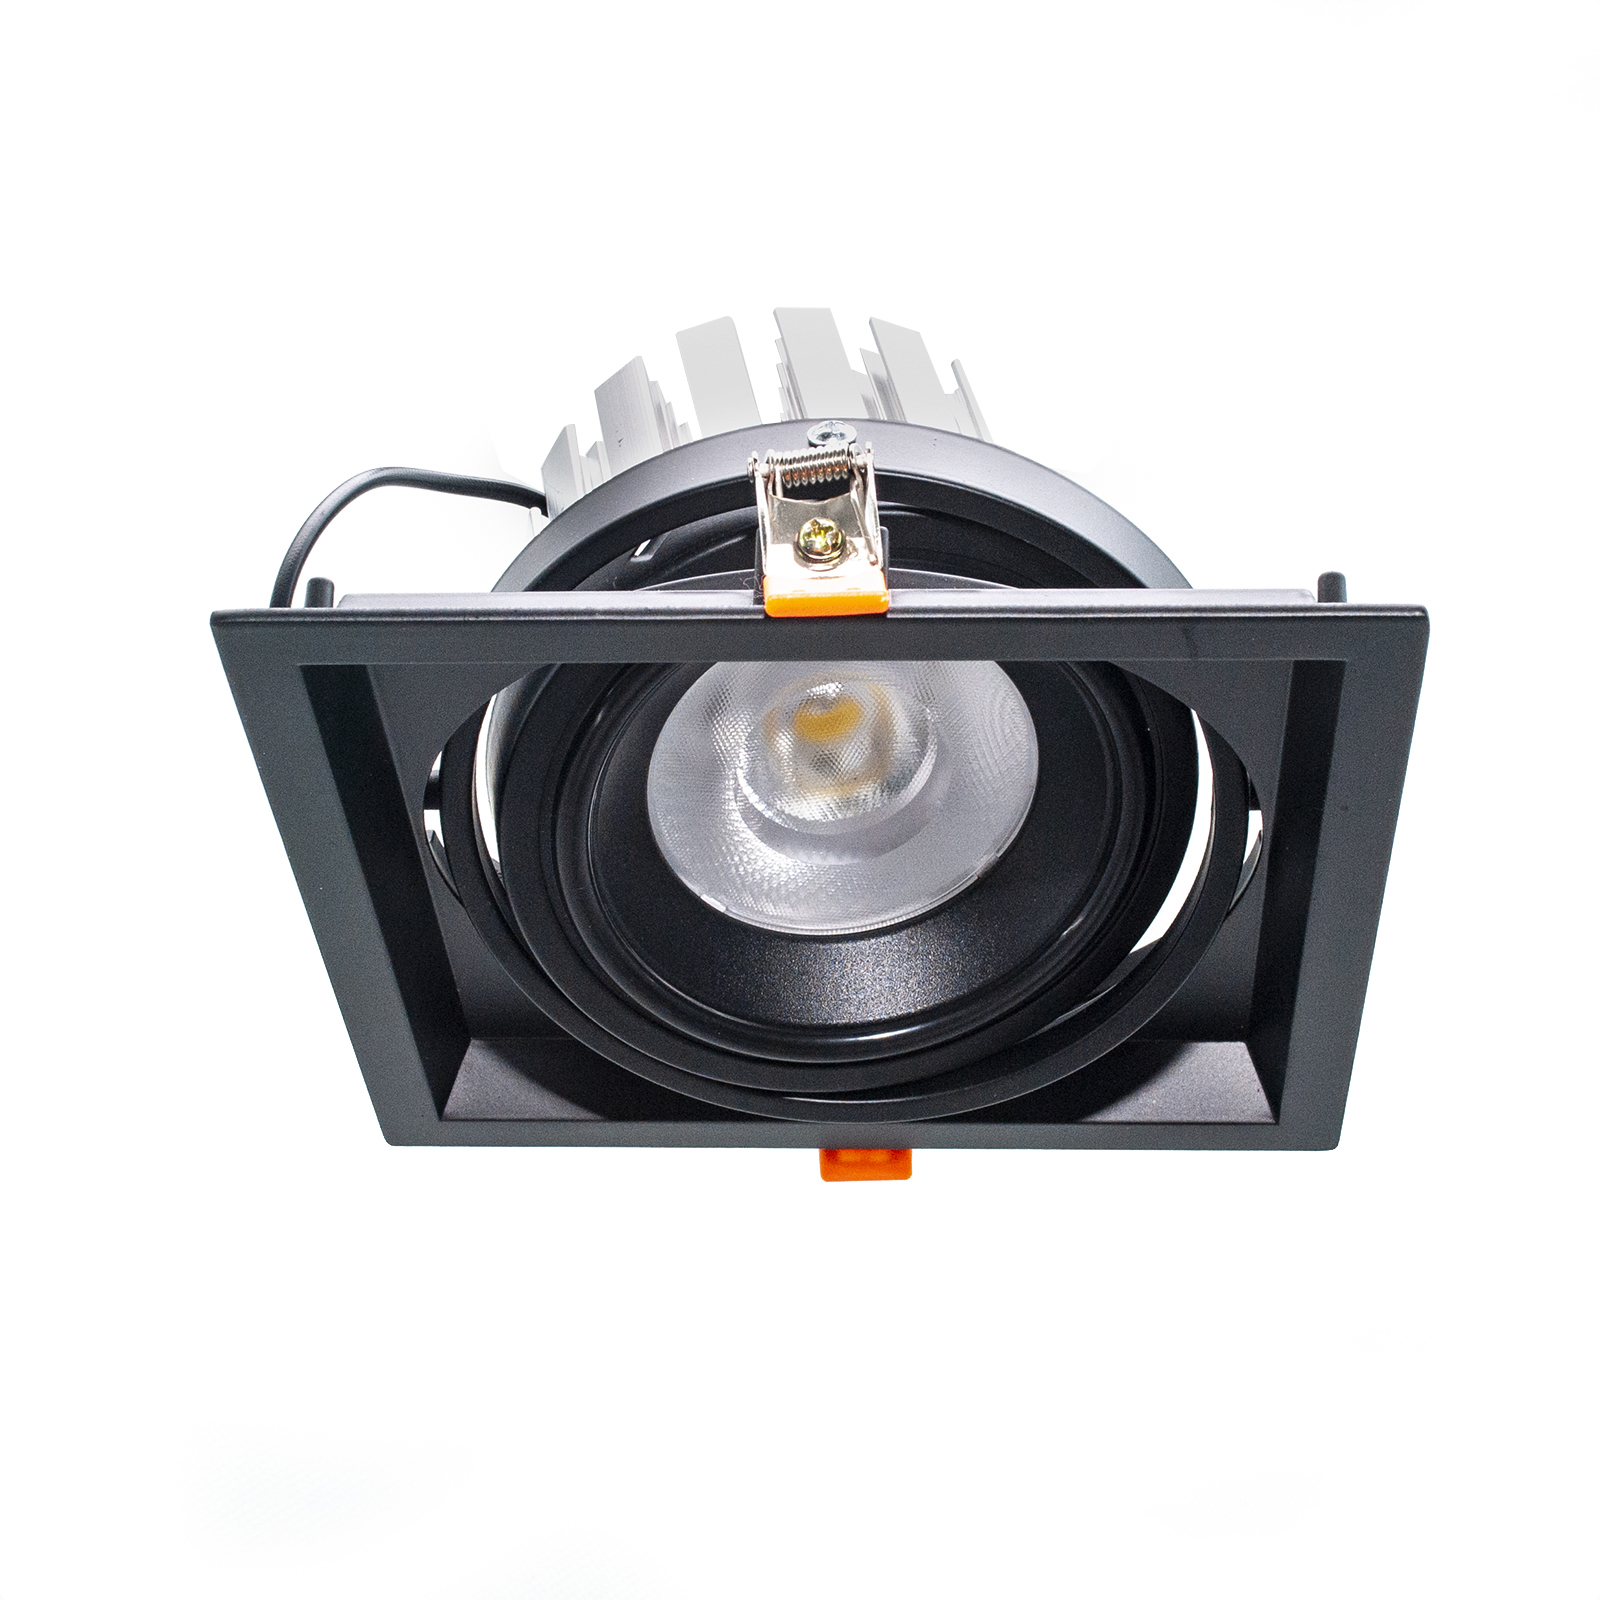 Adjustable recessed square spotlight 160mm LED 30W AR111 showcase lights 230V RA90